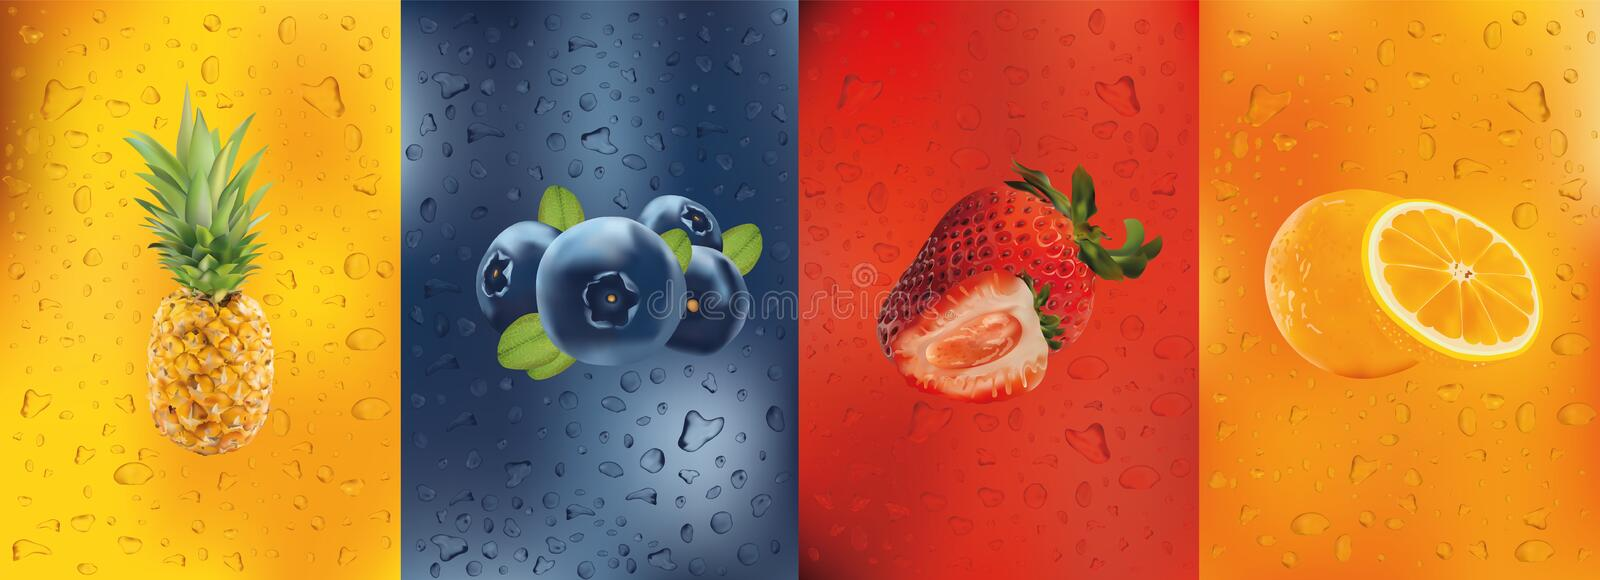 Fresh juice, pineapple, orange, strawberry, blueberry. Cocktail with fruits. Drink. 3D fresh fruits. Fruit splashes stock illustration